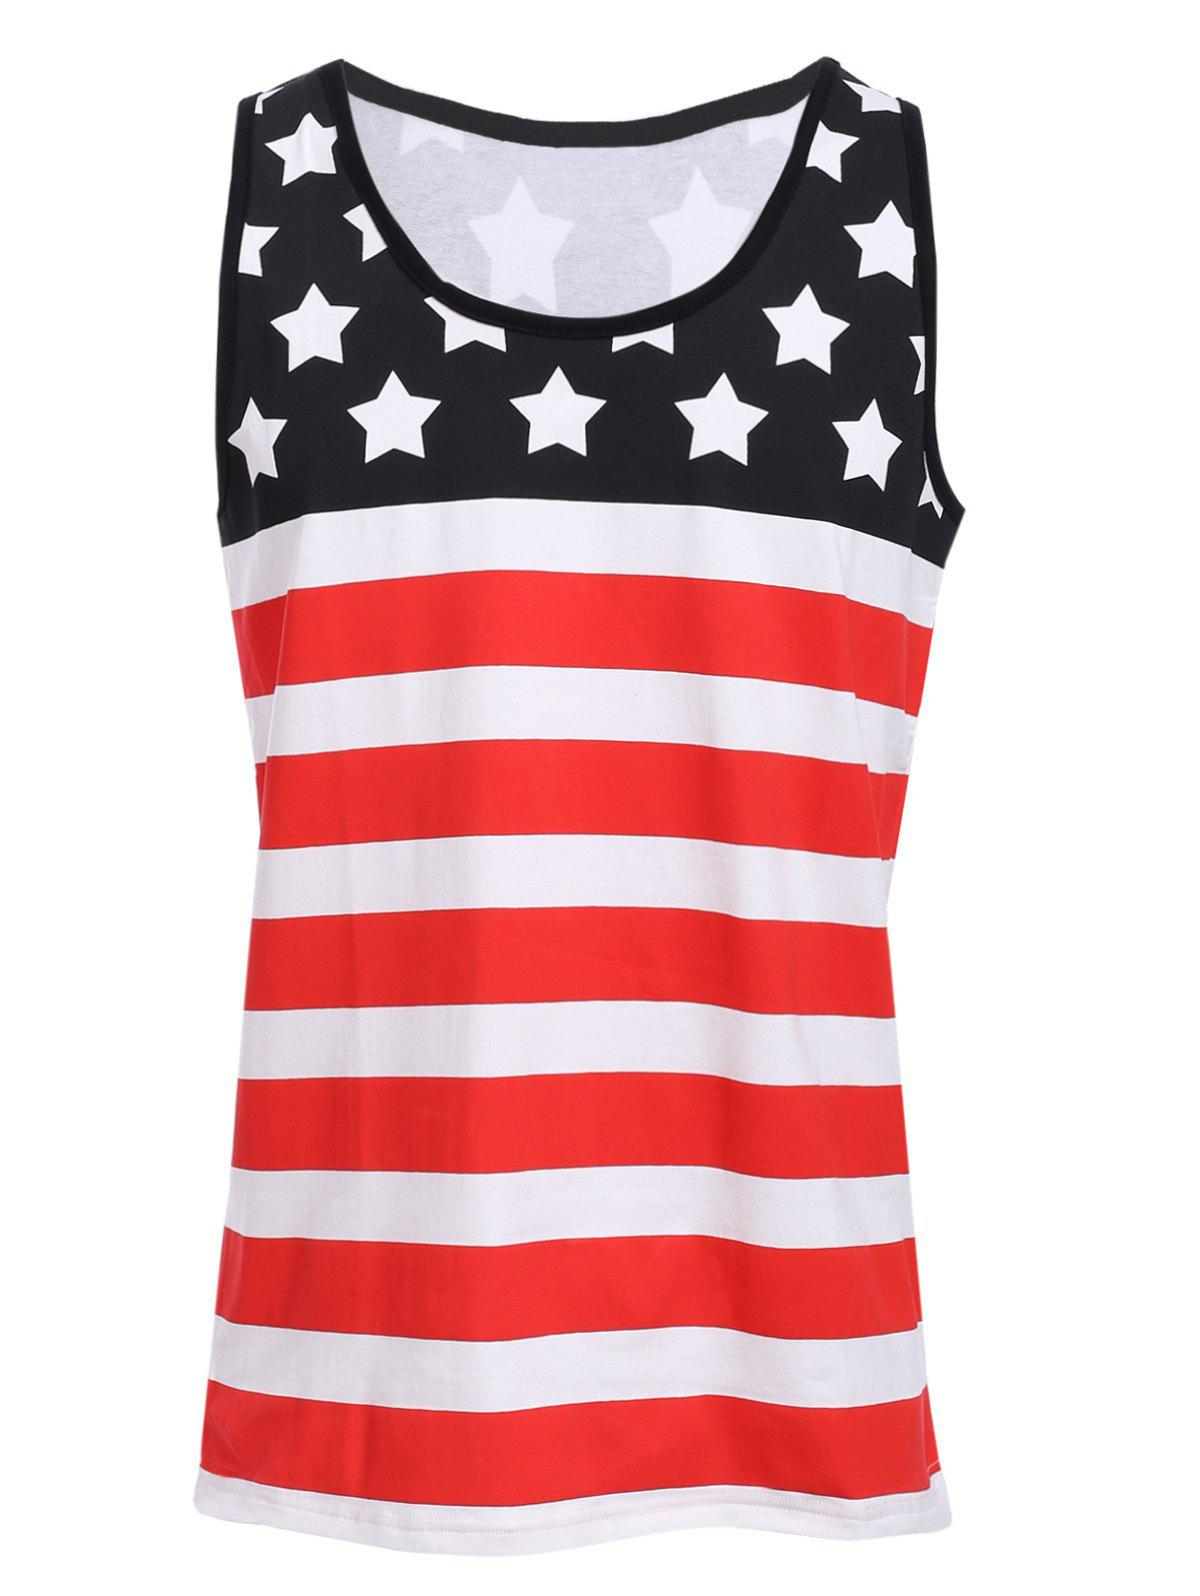 Sports Round Neck Stripes Star Print Men's Color Block Tank Top dia 400mm 900w 120v 3m ntc 100k round tank silicone heater huge 3d printer build plate heated bed electric heating plate element